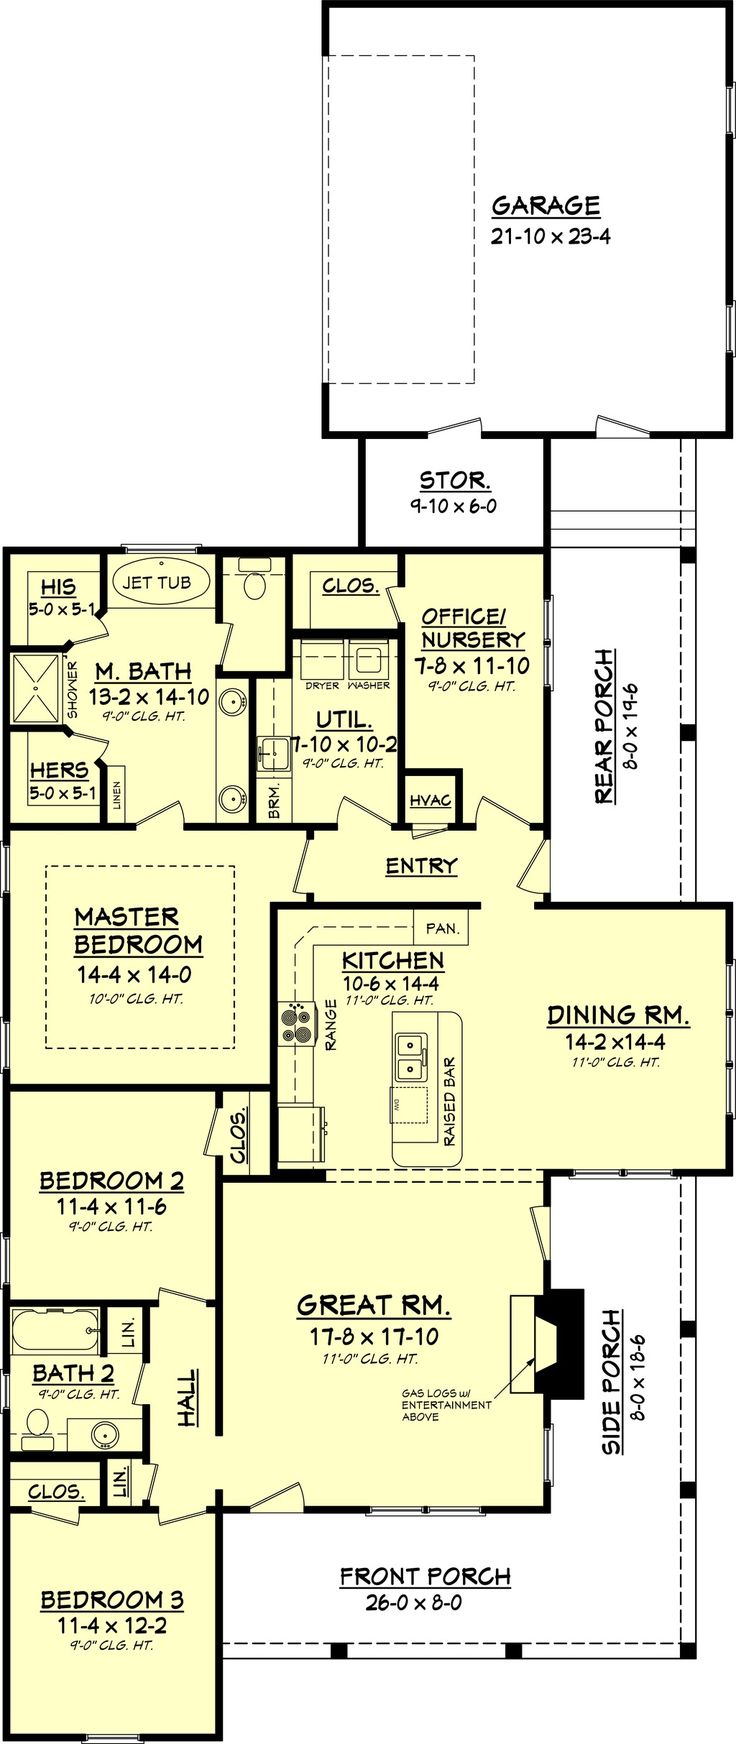 98 best floor plans images on pinterest | house floor plans, small